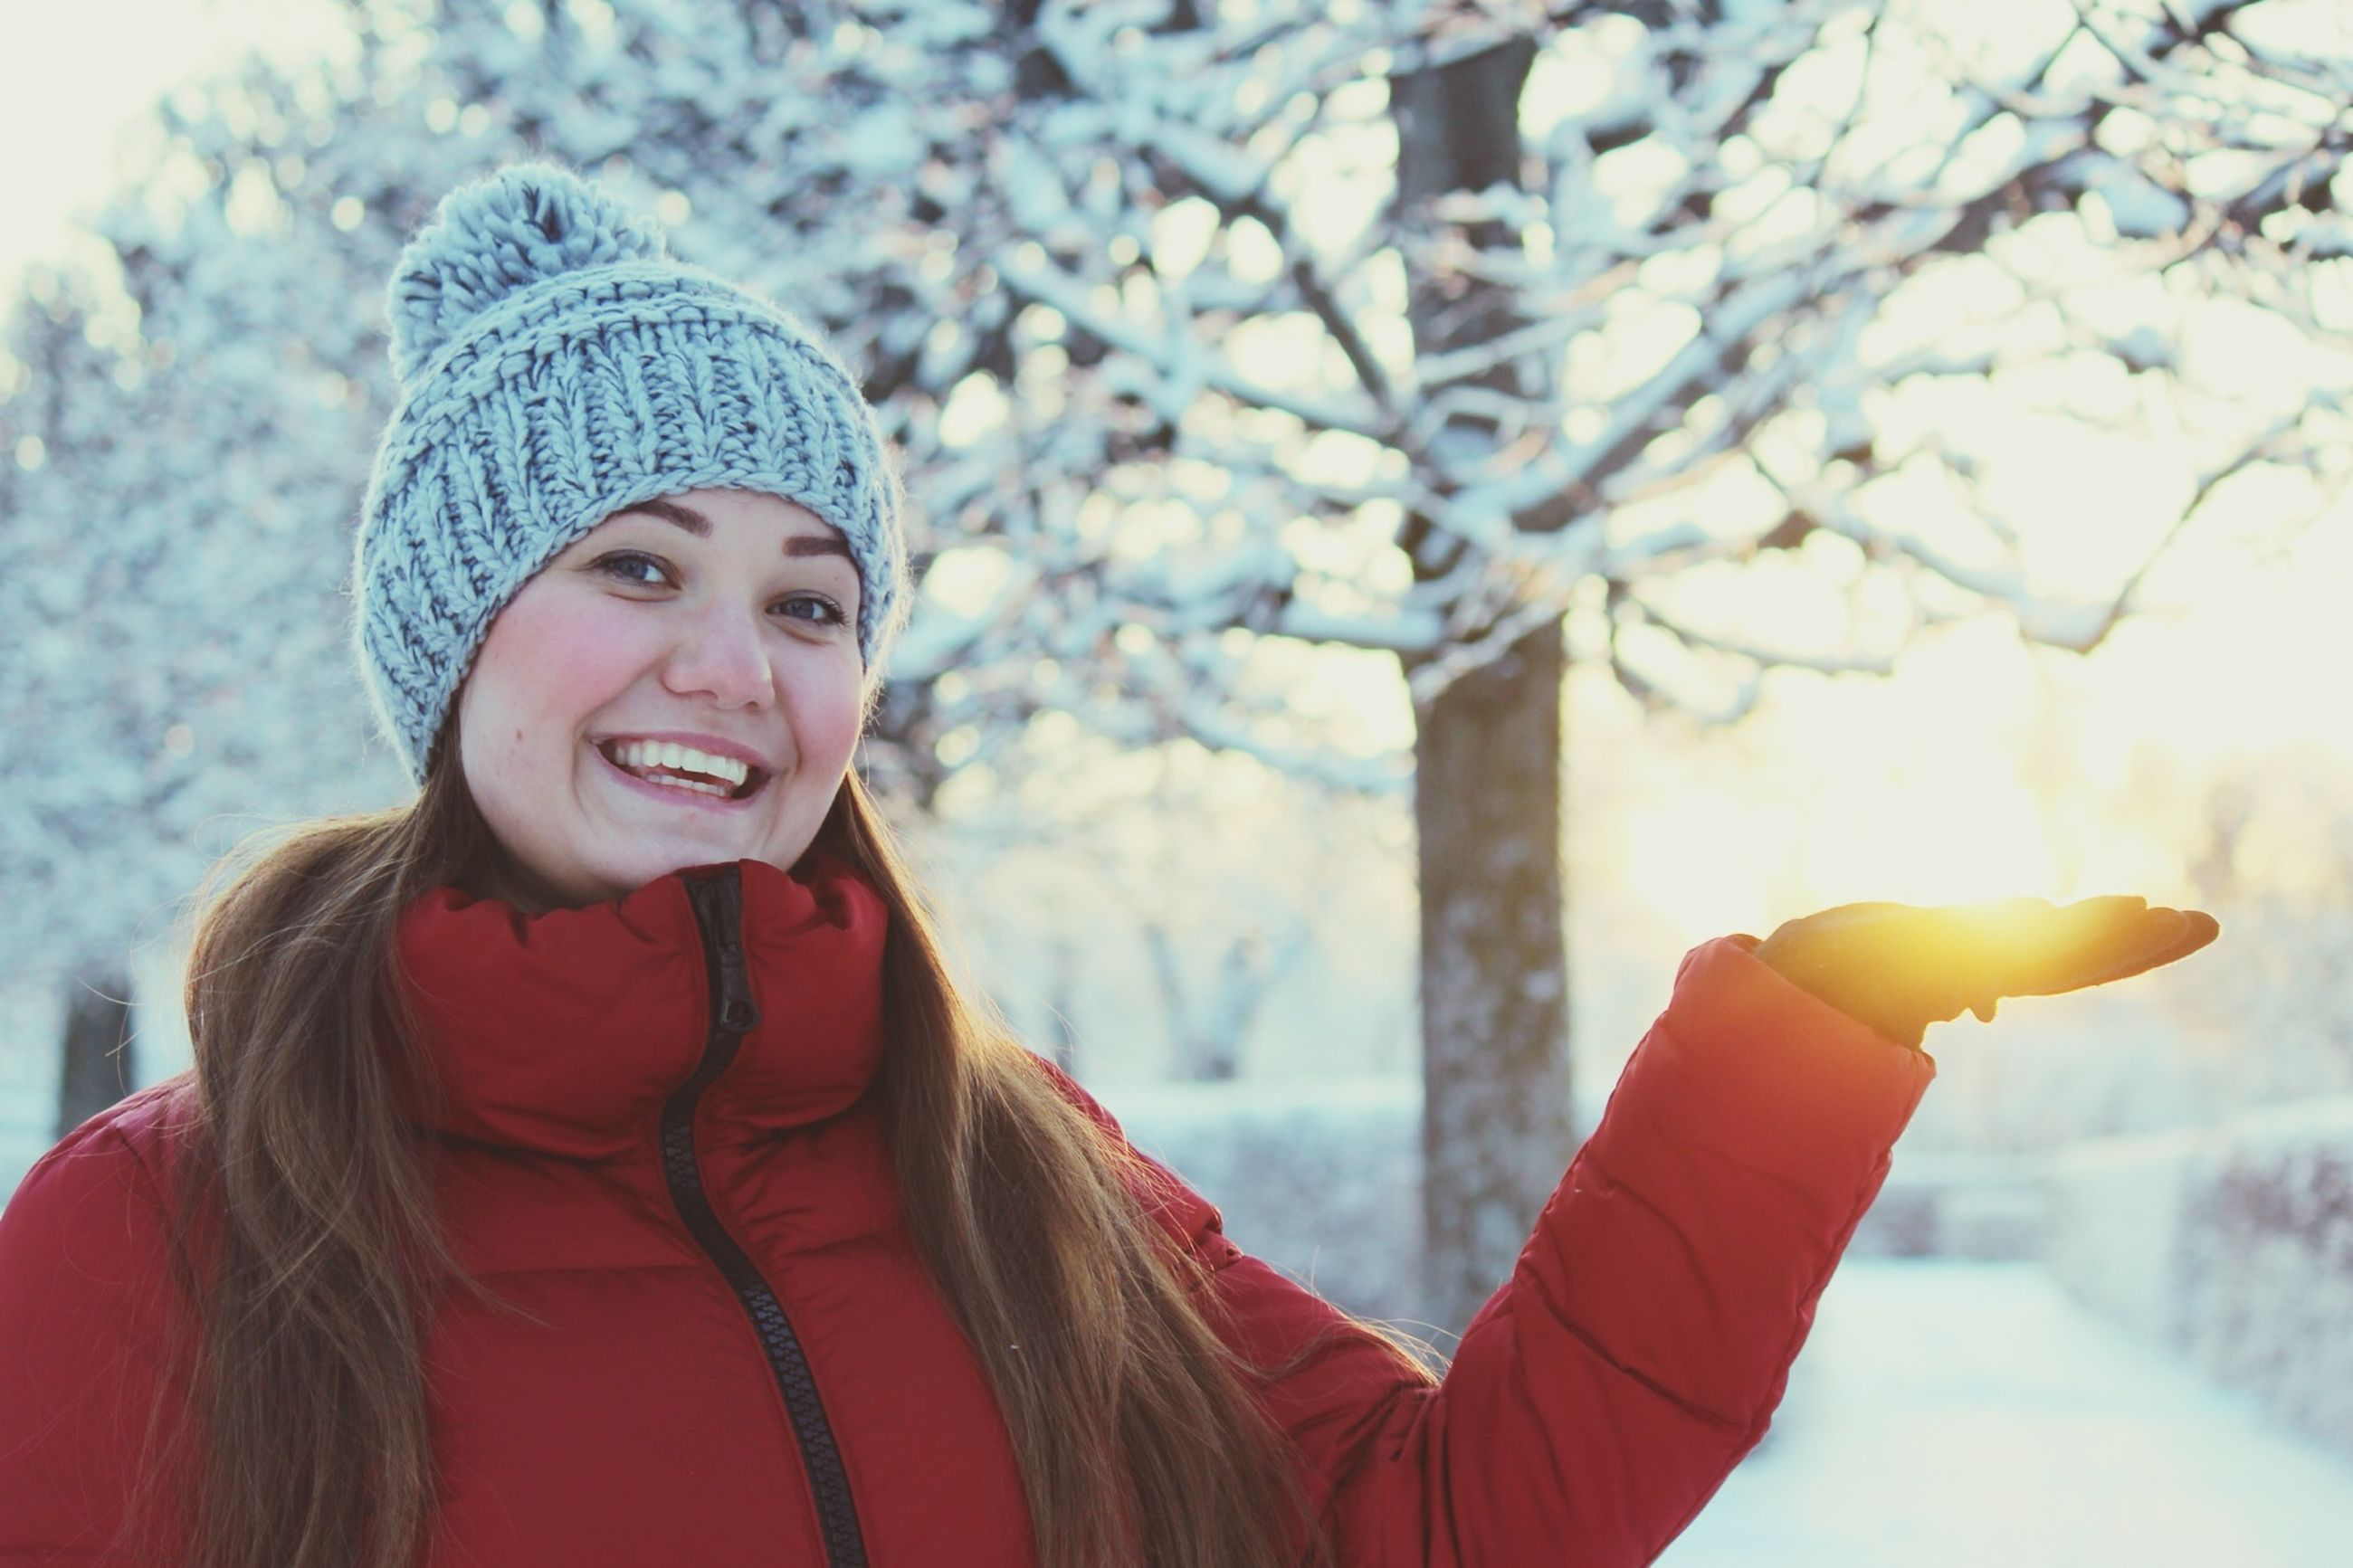 winter, cold temperature, snow, season, lifestyles, focus on foreground, warm clothing, leisure activity, headshot, holding, person, weather, casual clothing, waist up, looking at camera, standing, front view, knit hat